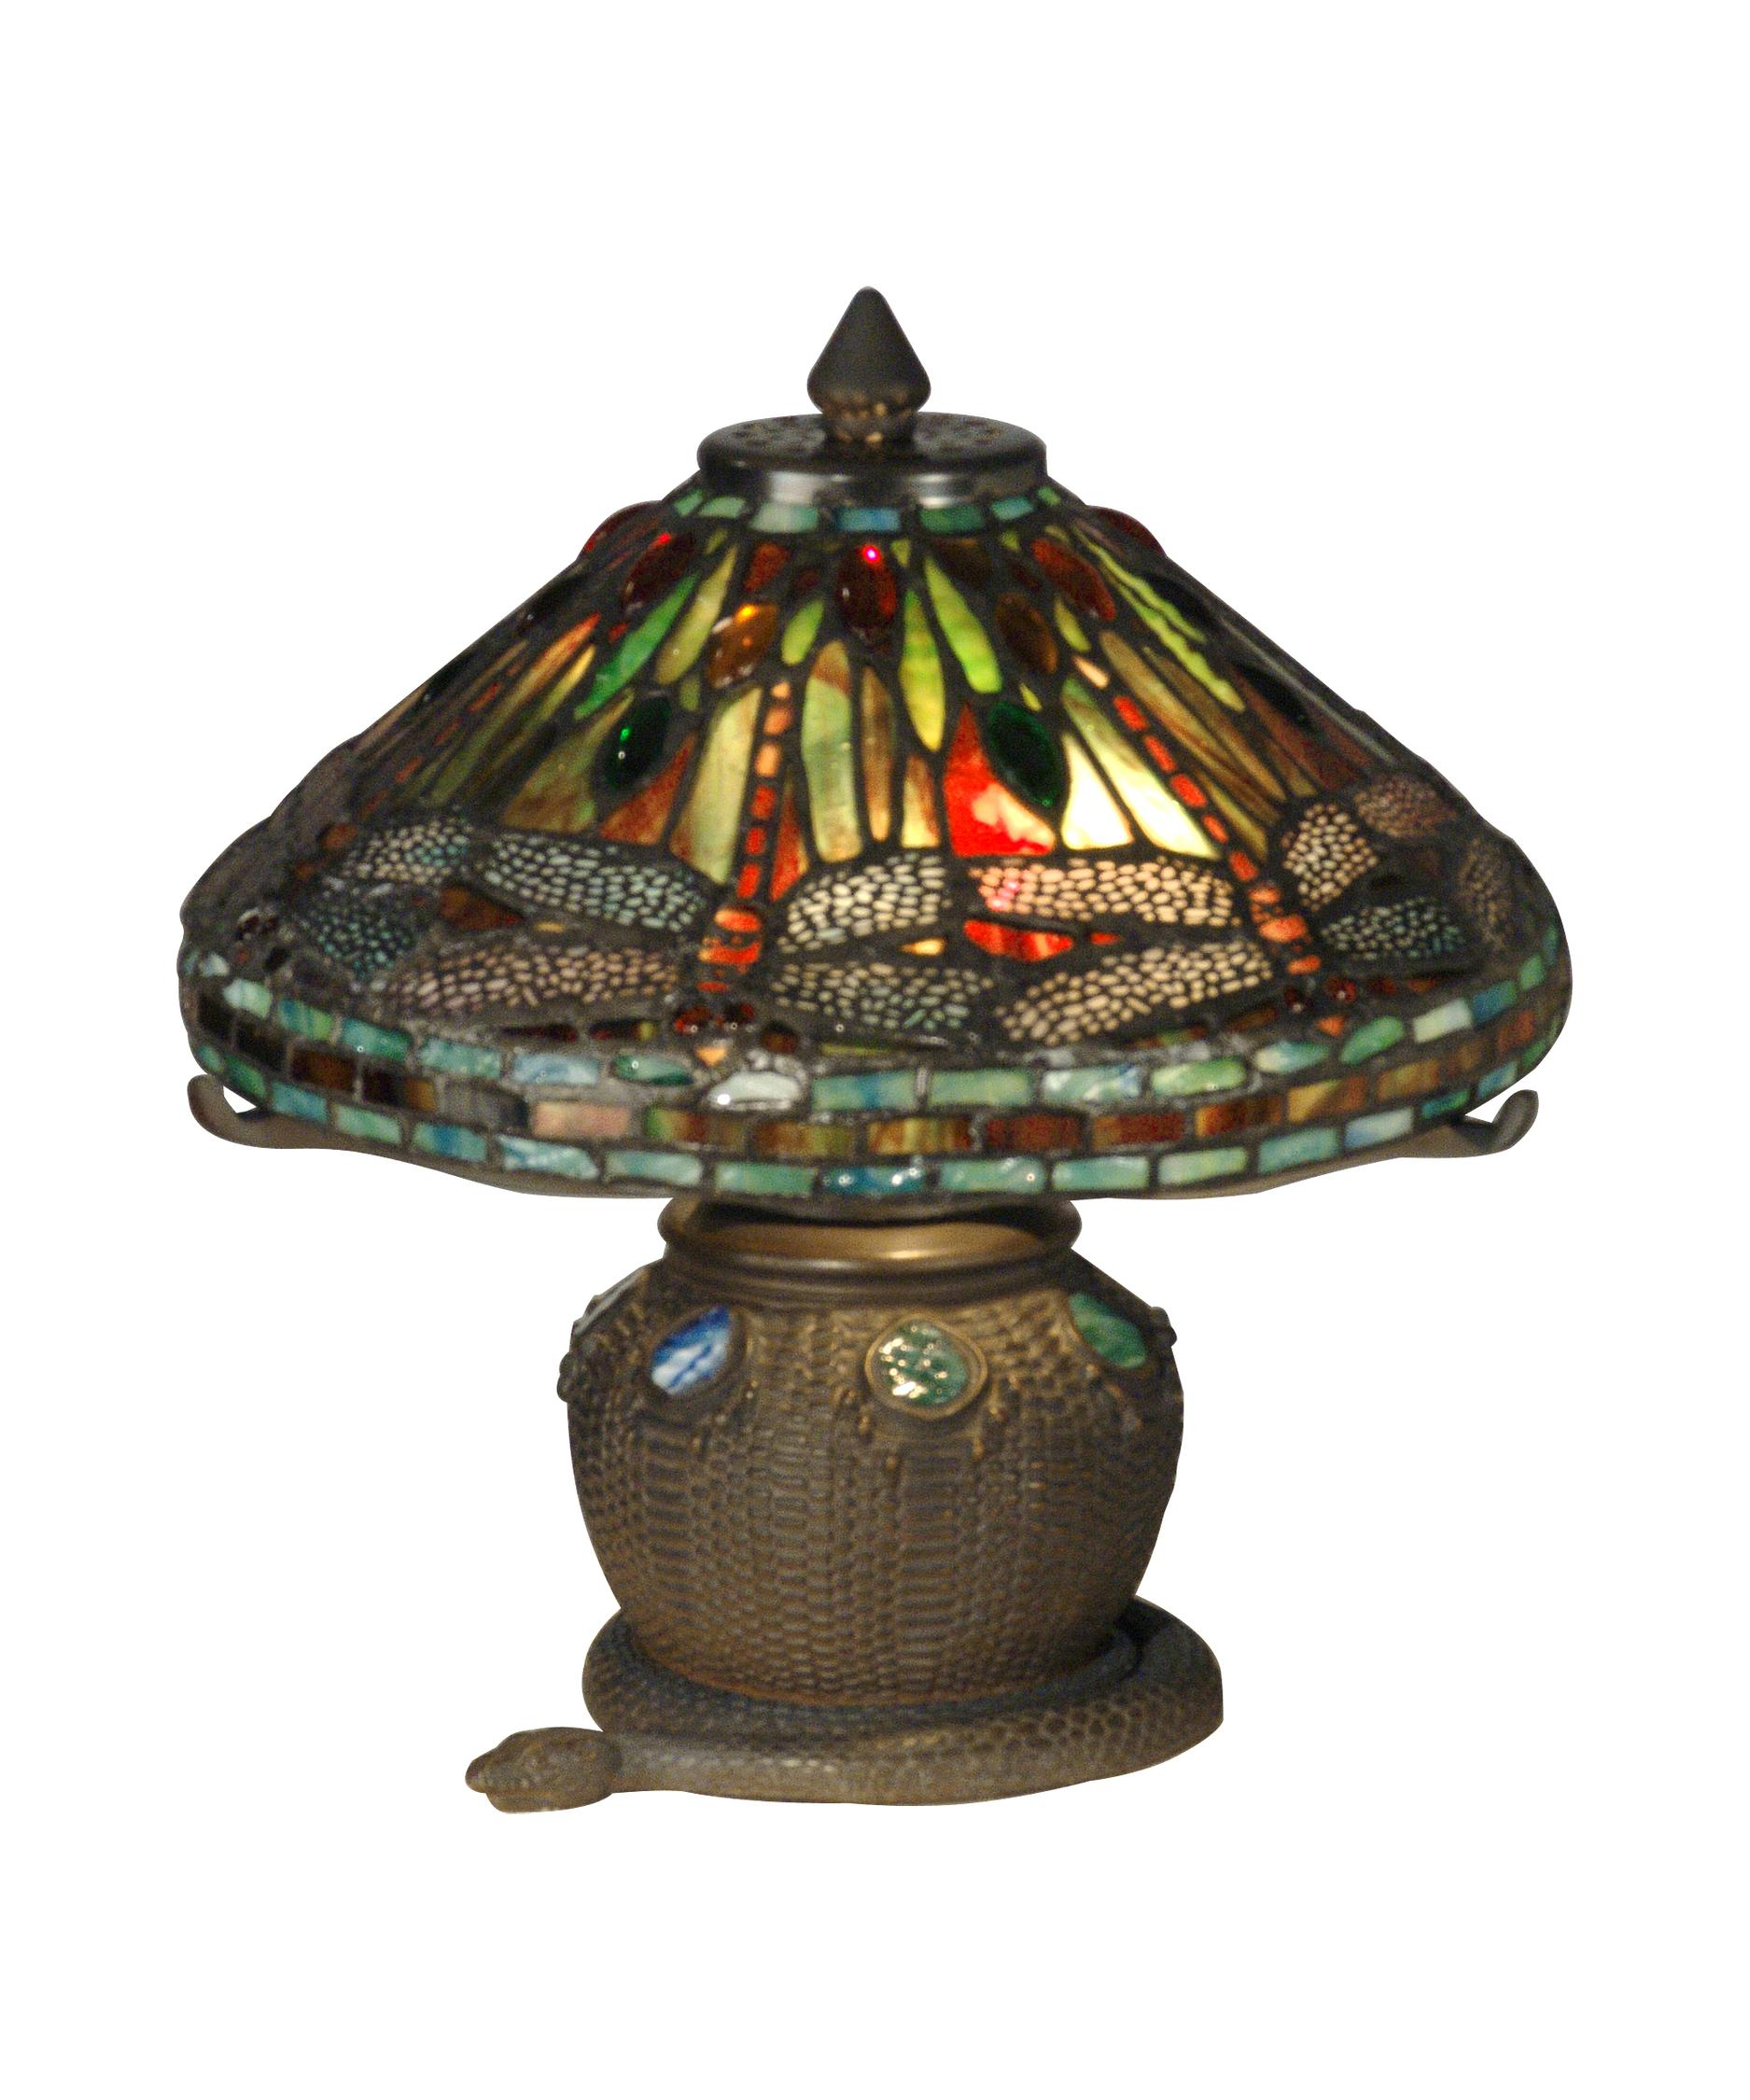 dale tiffany dragonfly inch accent lamp capitol lighting tables clearance tall table lamps cherry end queen anne west elm chair plastic garden furniture patio occasional headboard